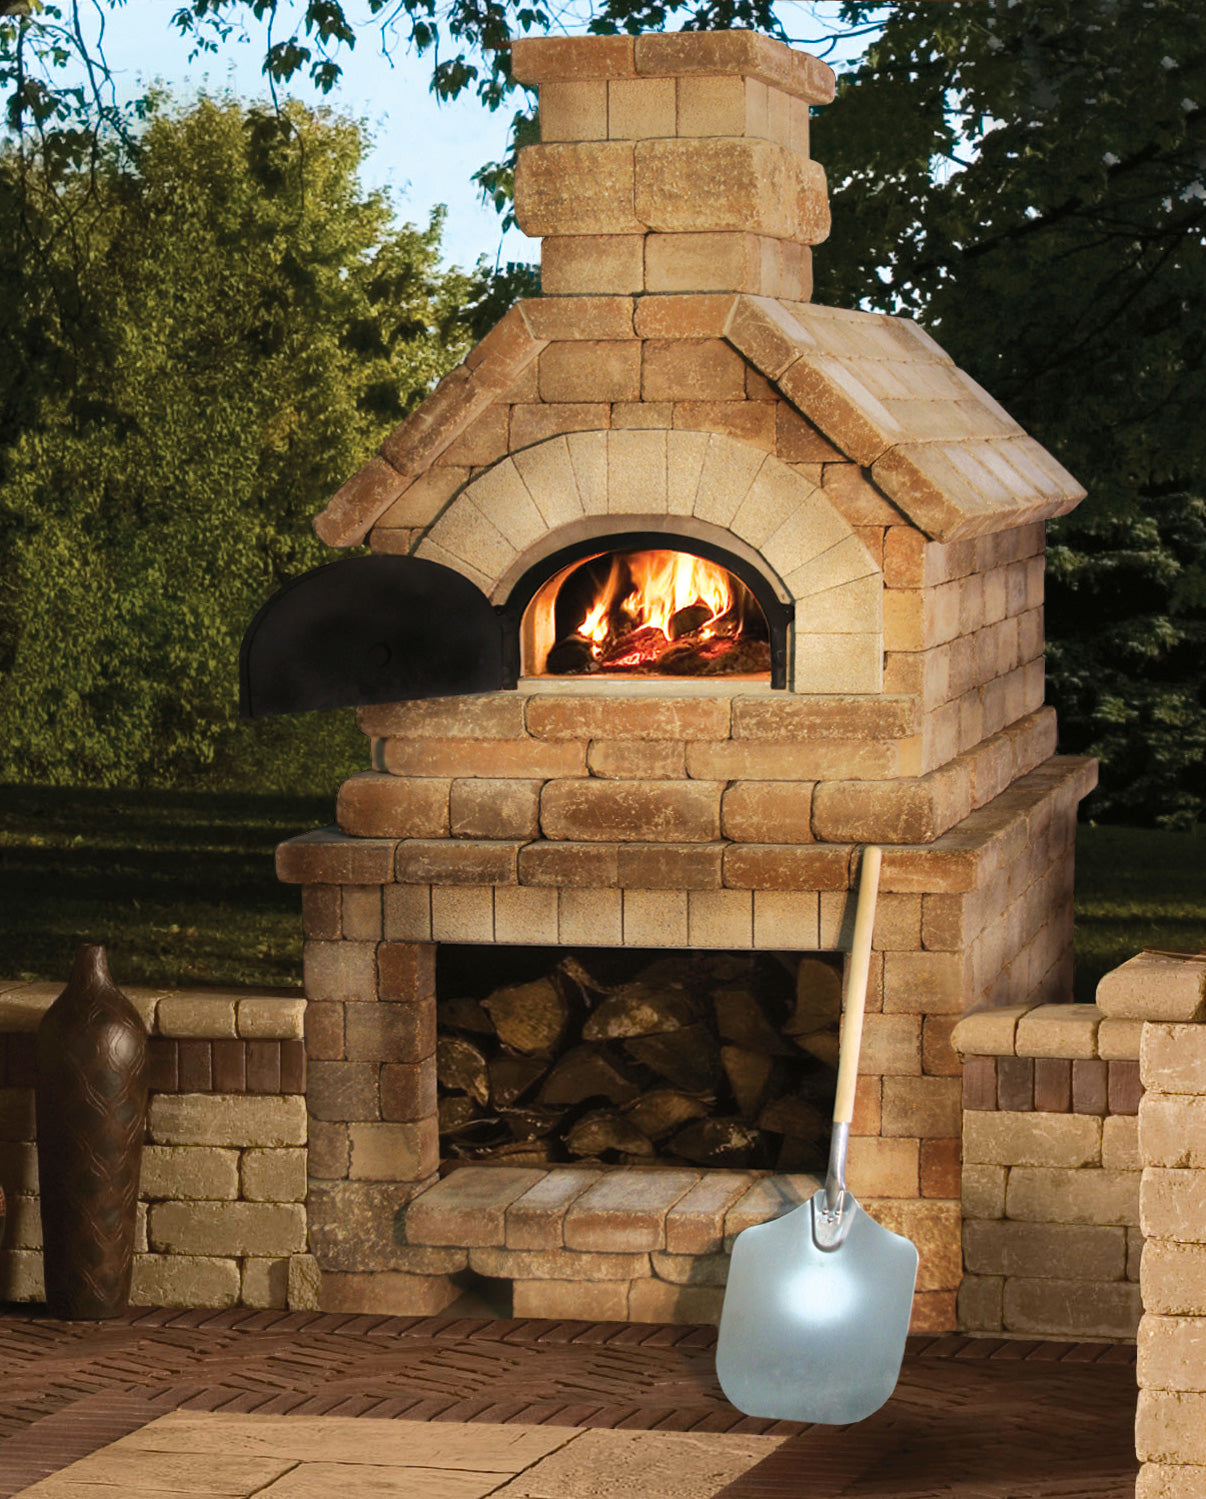 33 Most Popular Outdoor Kitchen Ideas Design Make Your: CBO-750 DIY Wood-Fired Oven Kit